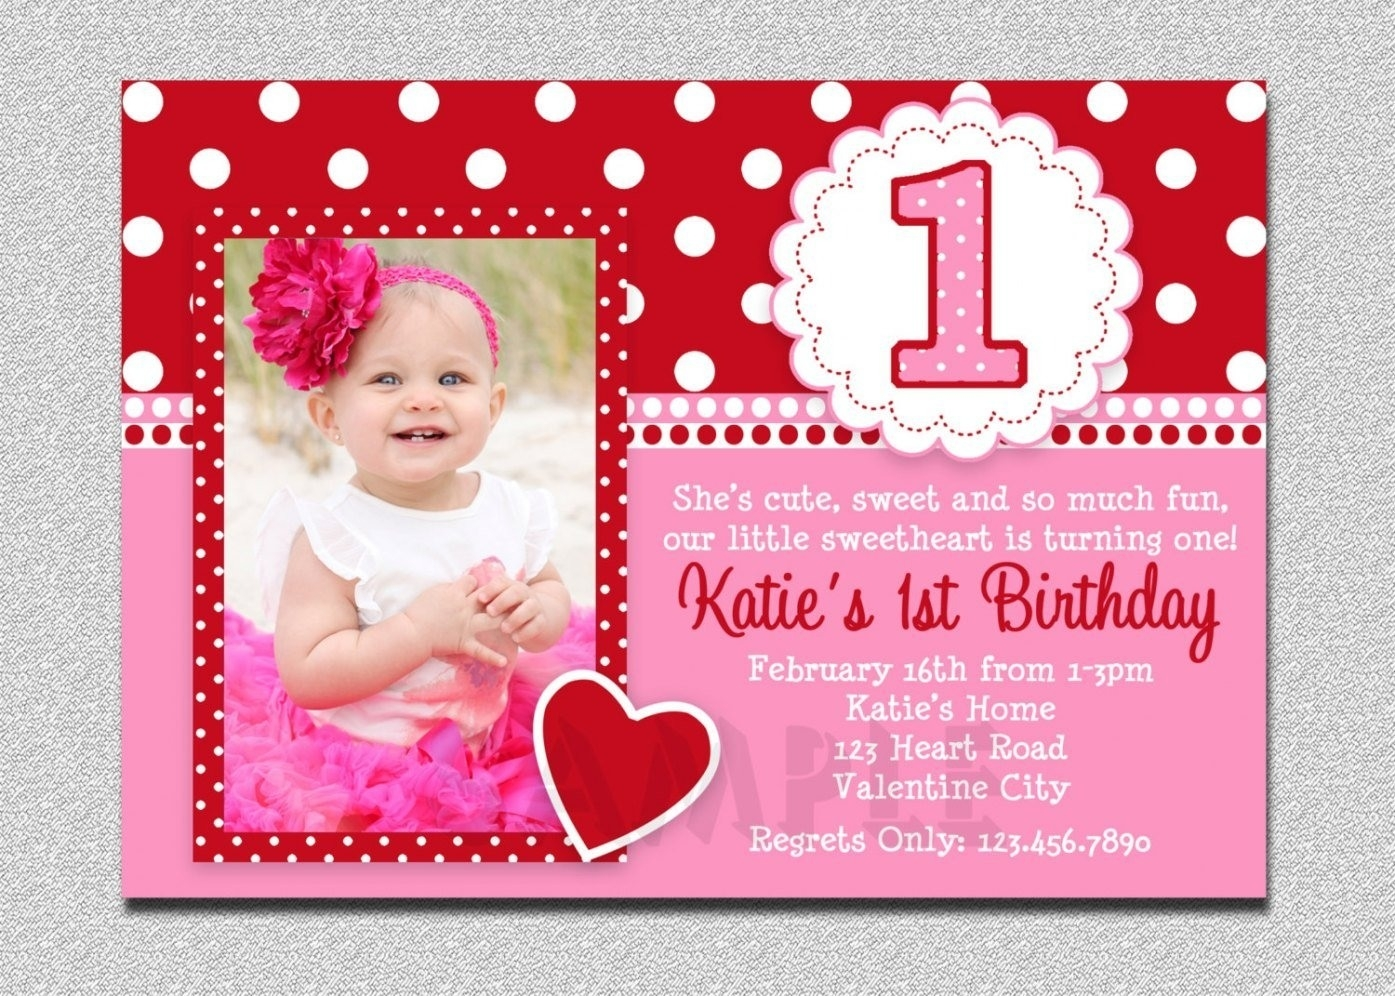 1st year birthday invitation card template ; editable-1st-birthday-invitation-cards-templates-party-inside-within-editable-1st-birthday-invitation-cards-templates